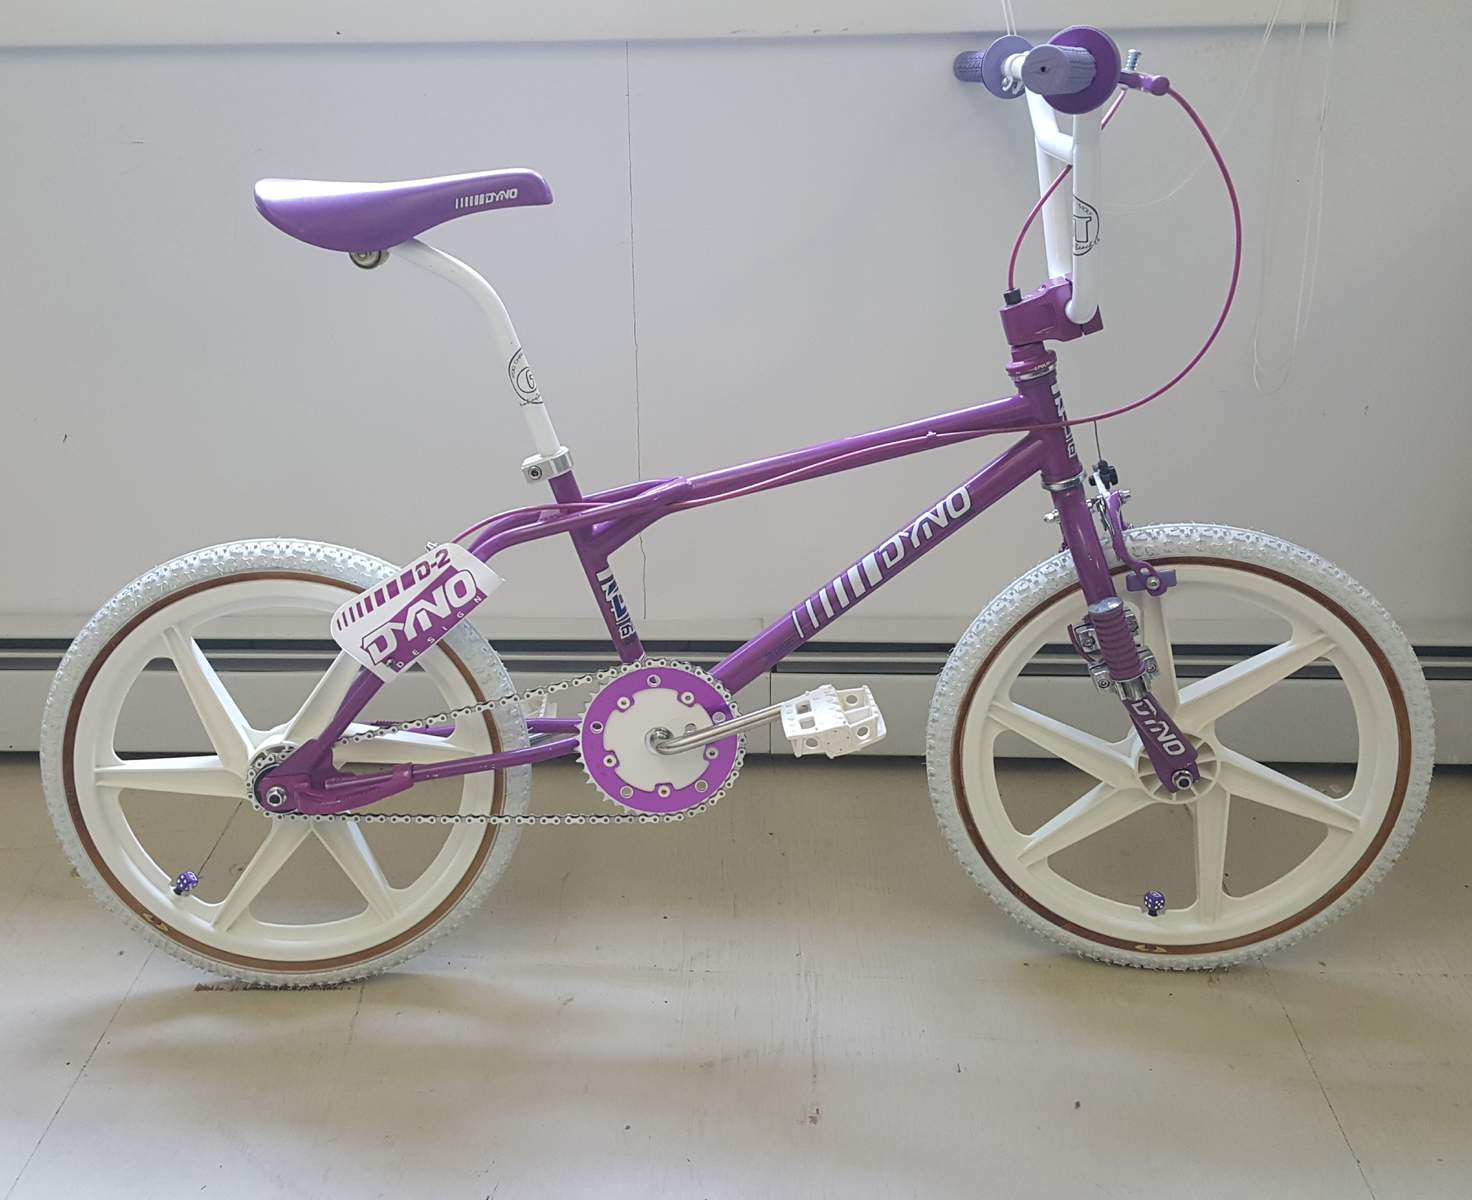 https://s3.amazonaws.com/uploads.bmxmuseum.com/user-images/243997/20190525_1817205eecc106a1.jpg